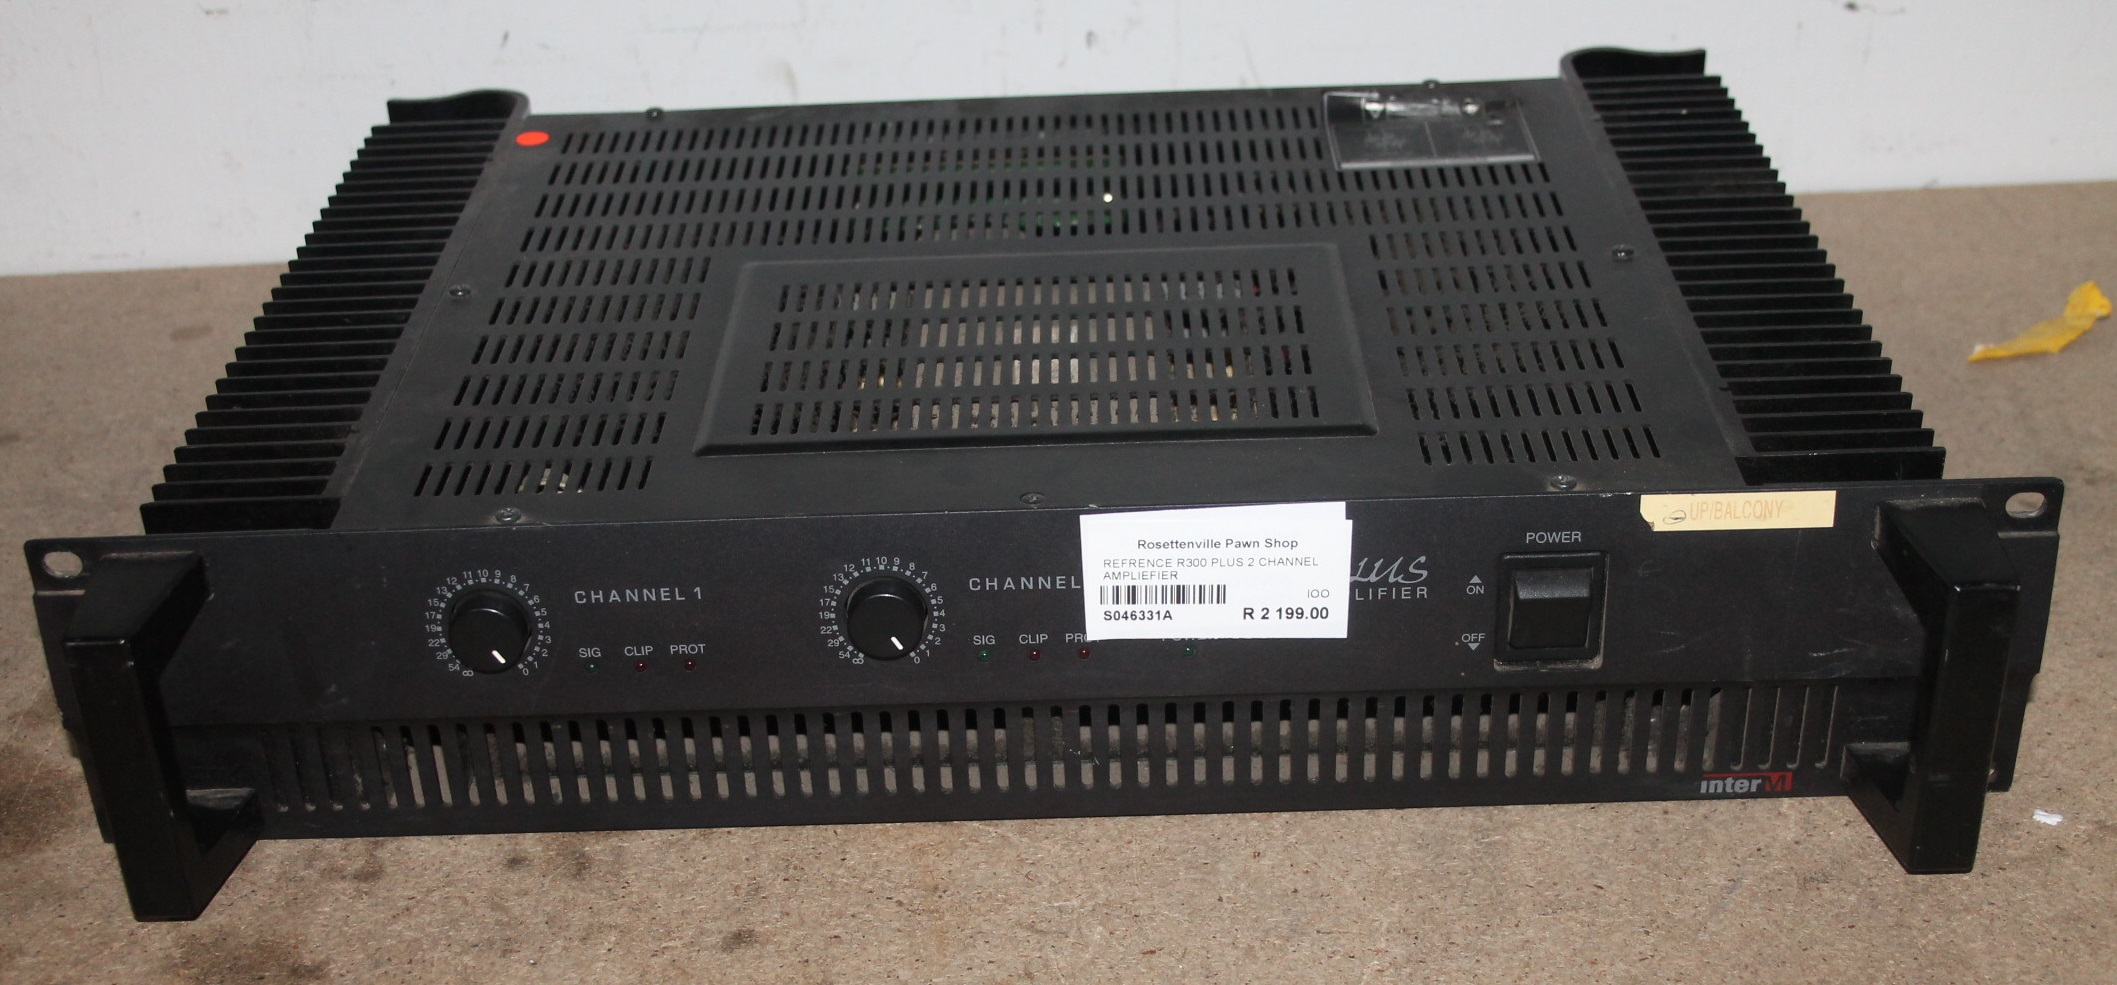 Reference r300 plus 2 channel amp S046331A #Rosettenvillepawnshop